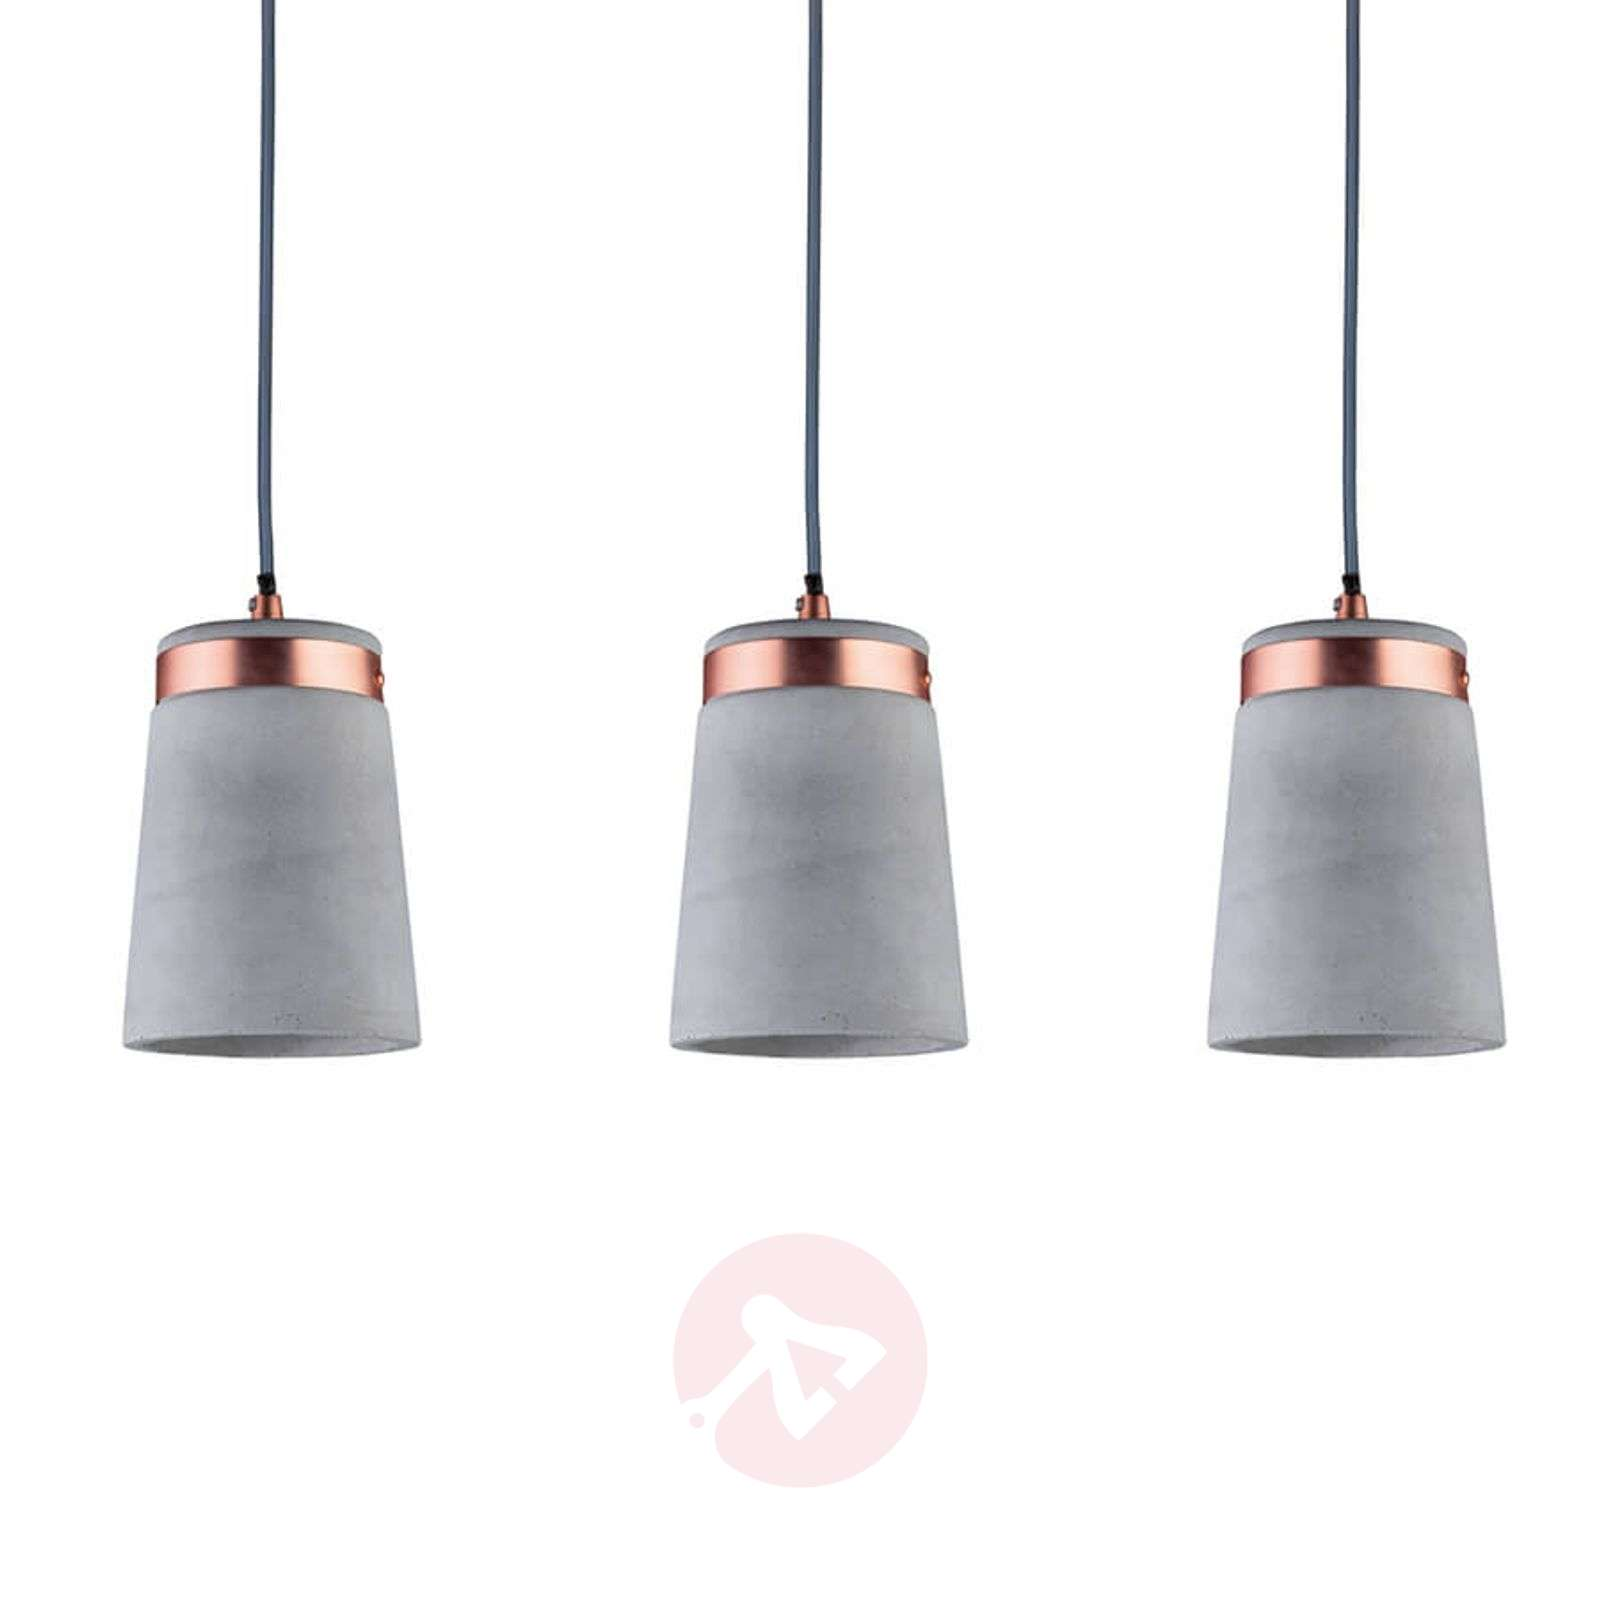 Three-bulb Hanging light Stig, concrete lampshade-7601052-01